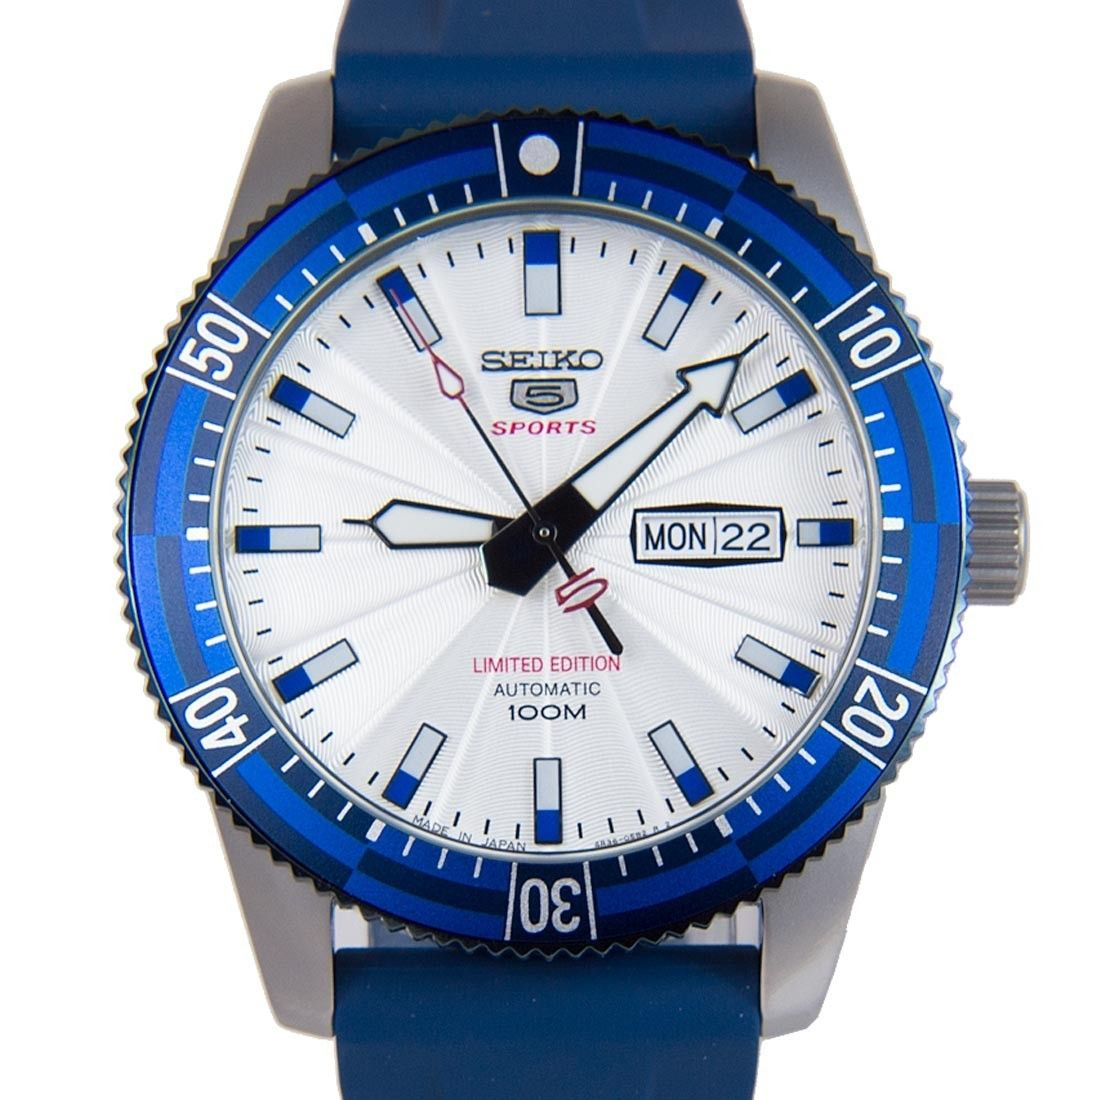 Seiko 5 Sports Automatic White Dial Limited Edition Mt